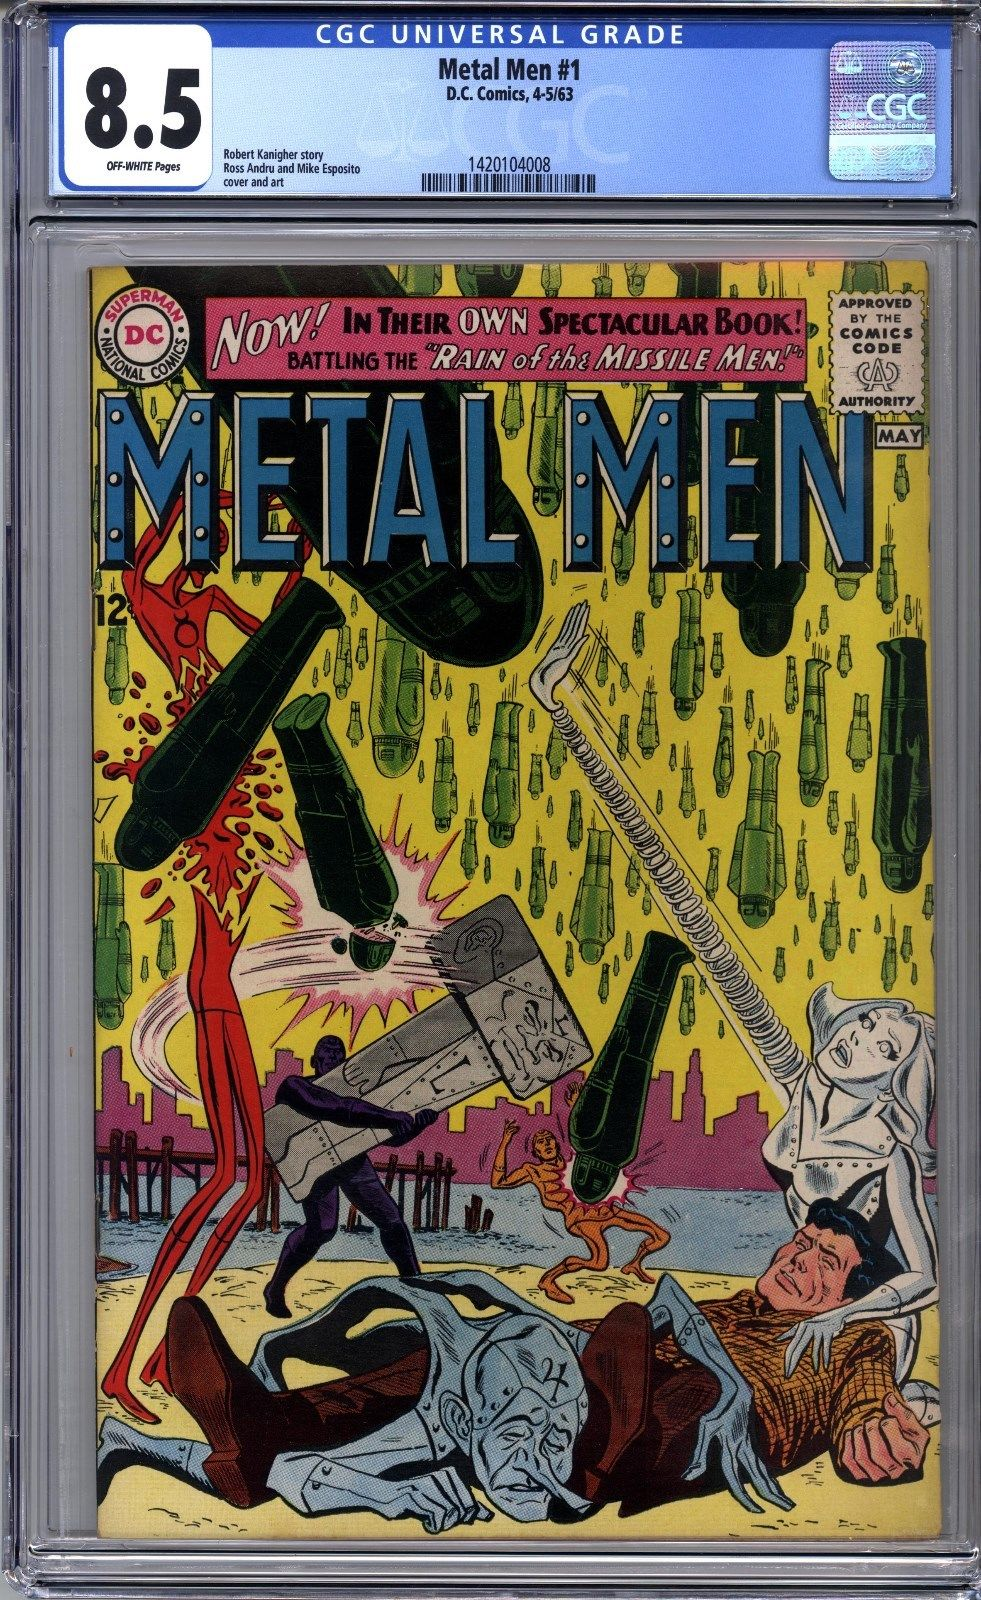 Metal Men #1 (Apr-May 1963, DC) CGC Graded 8.5 #1420104008